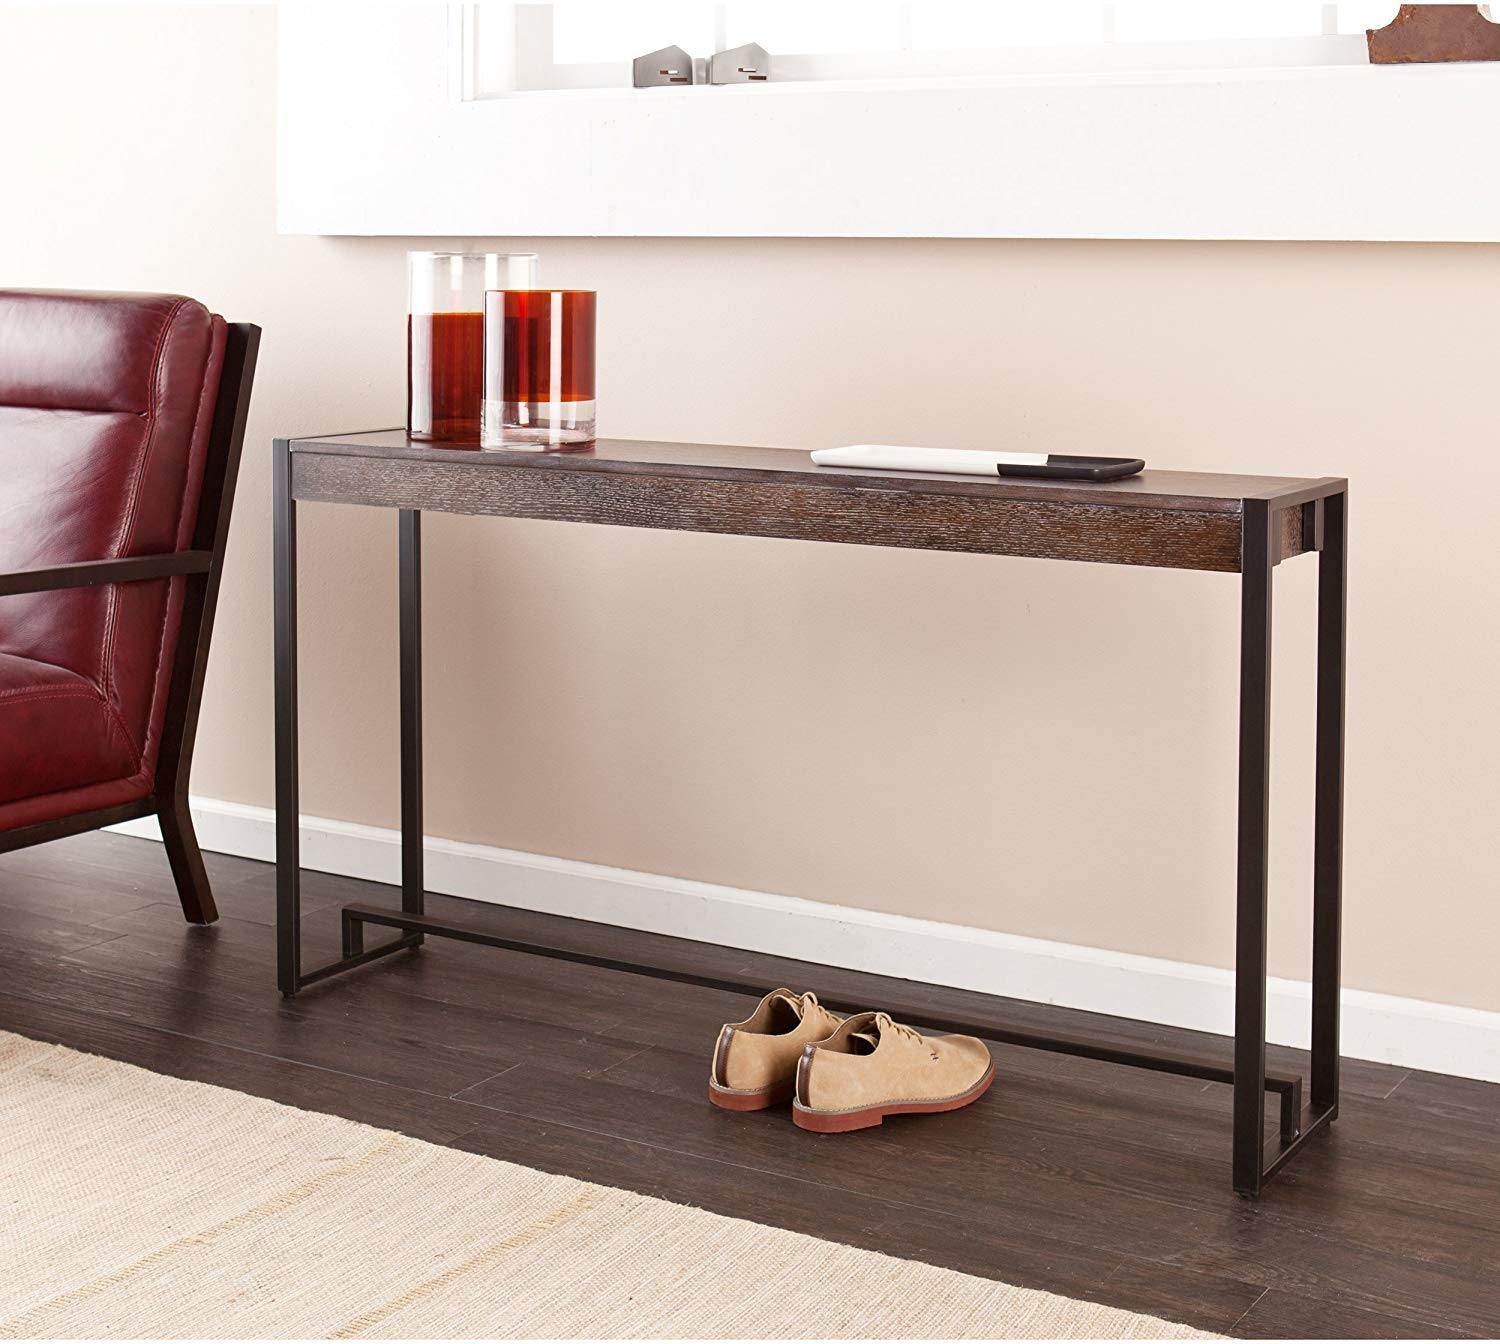 Espresso Skinny Console Table Desk, Sofa Table Desk With Drawers